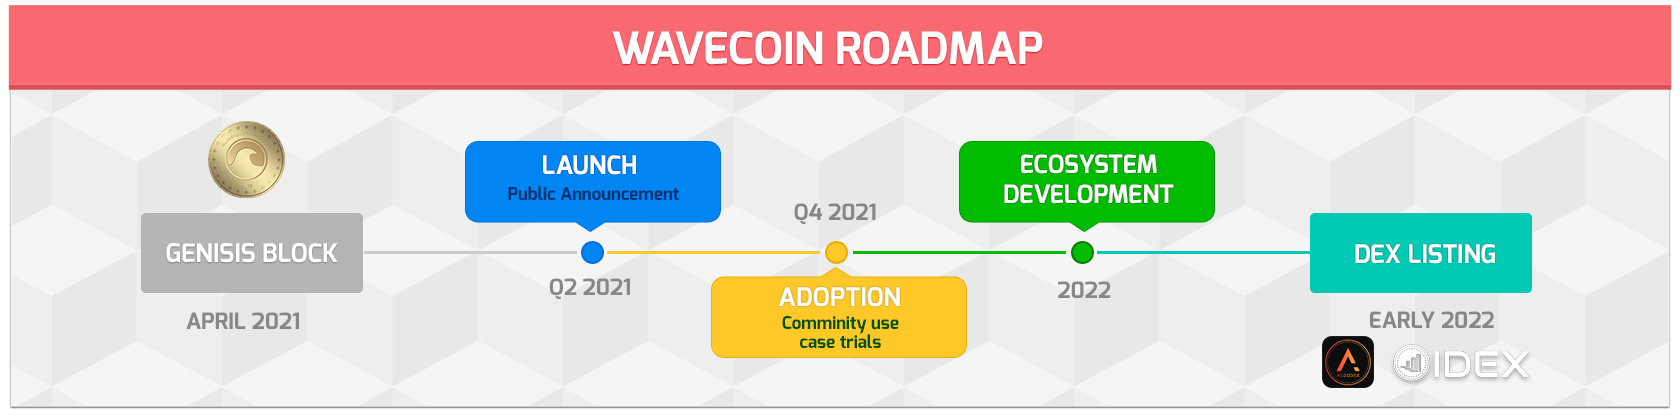 WaveCoin Roadmap Timeline